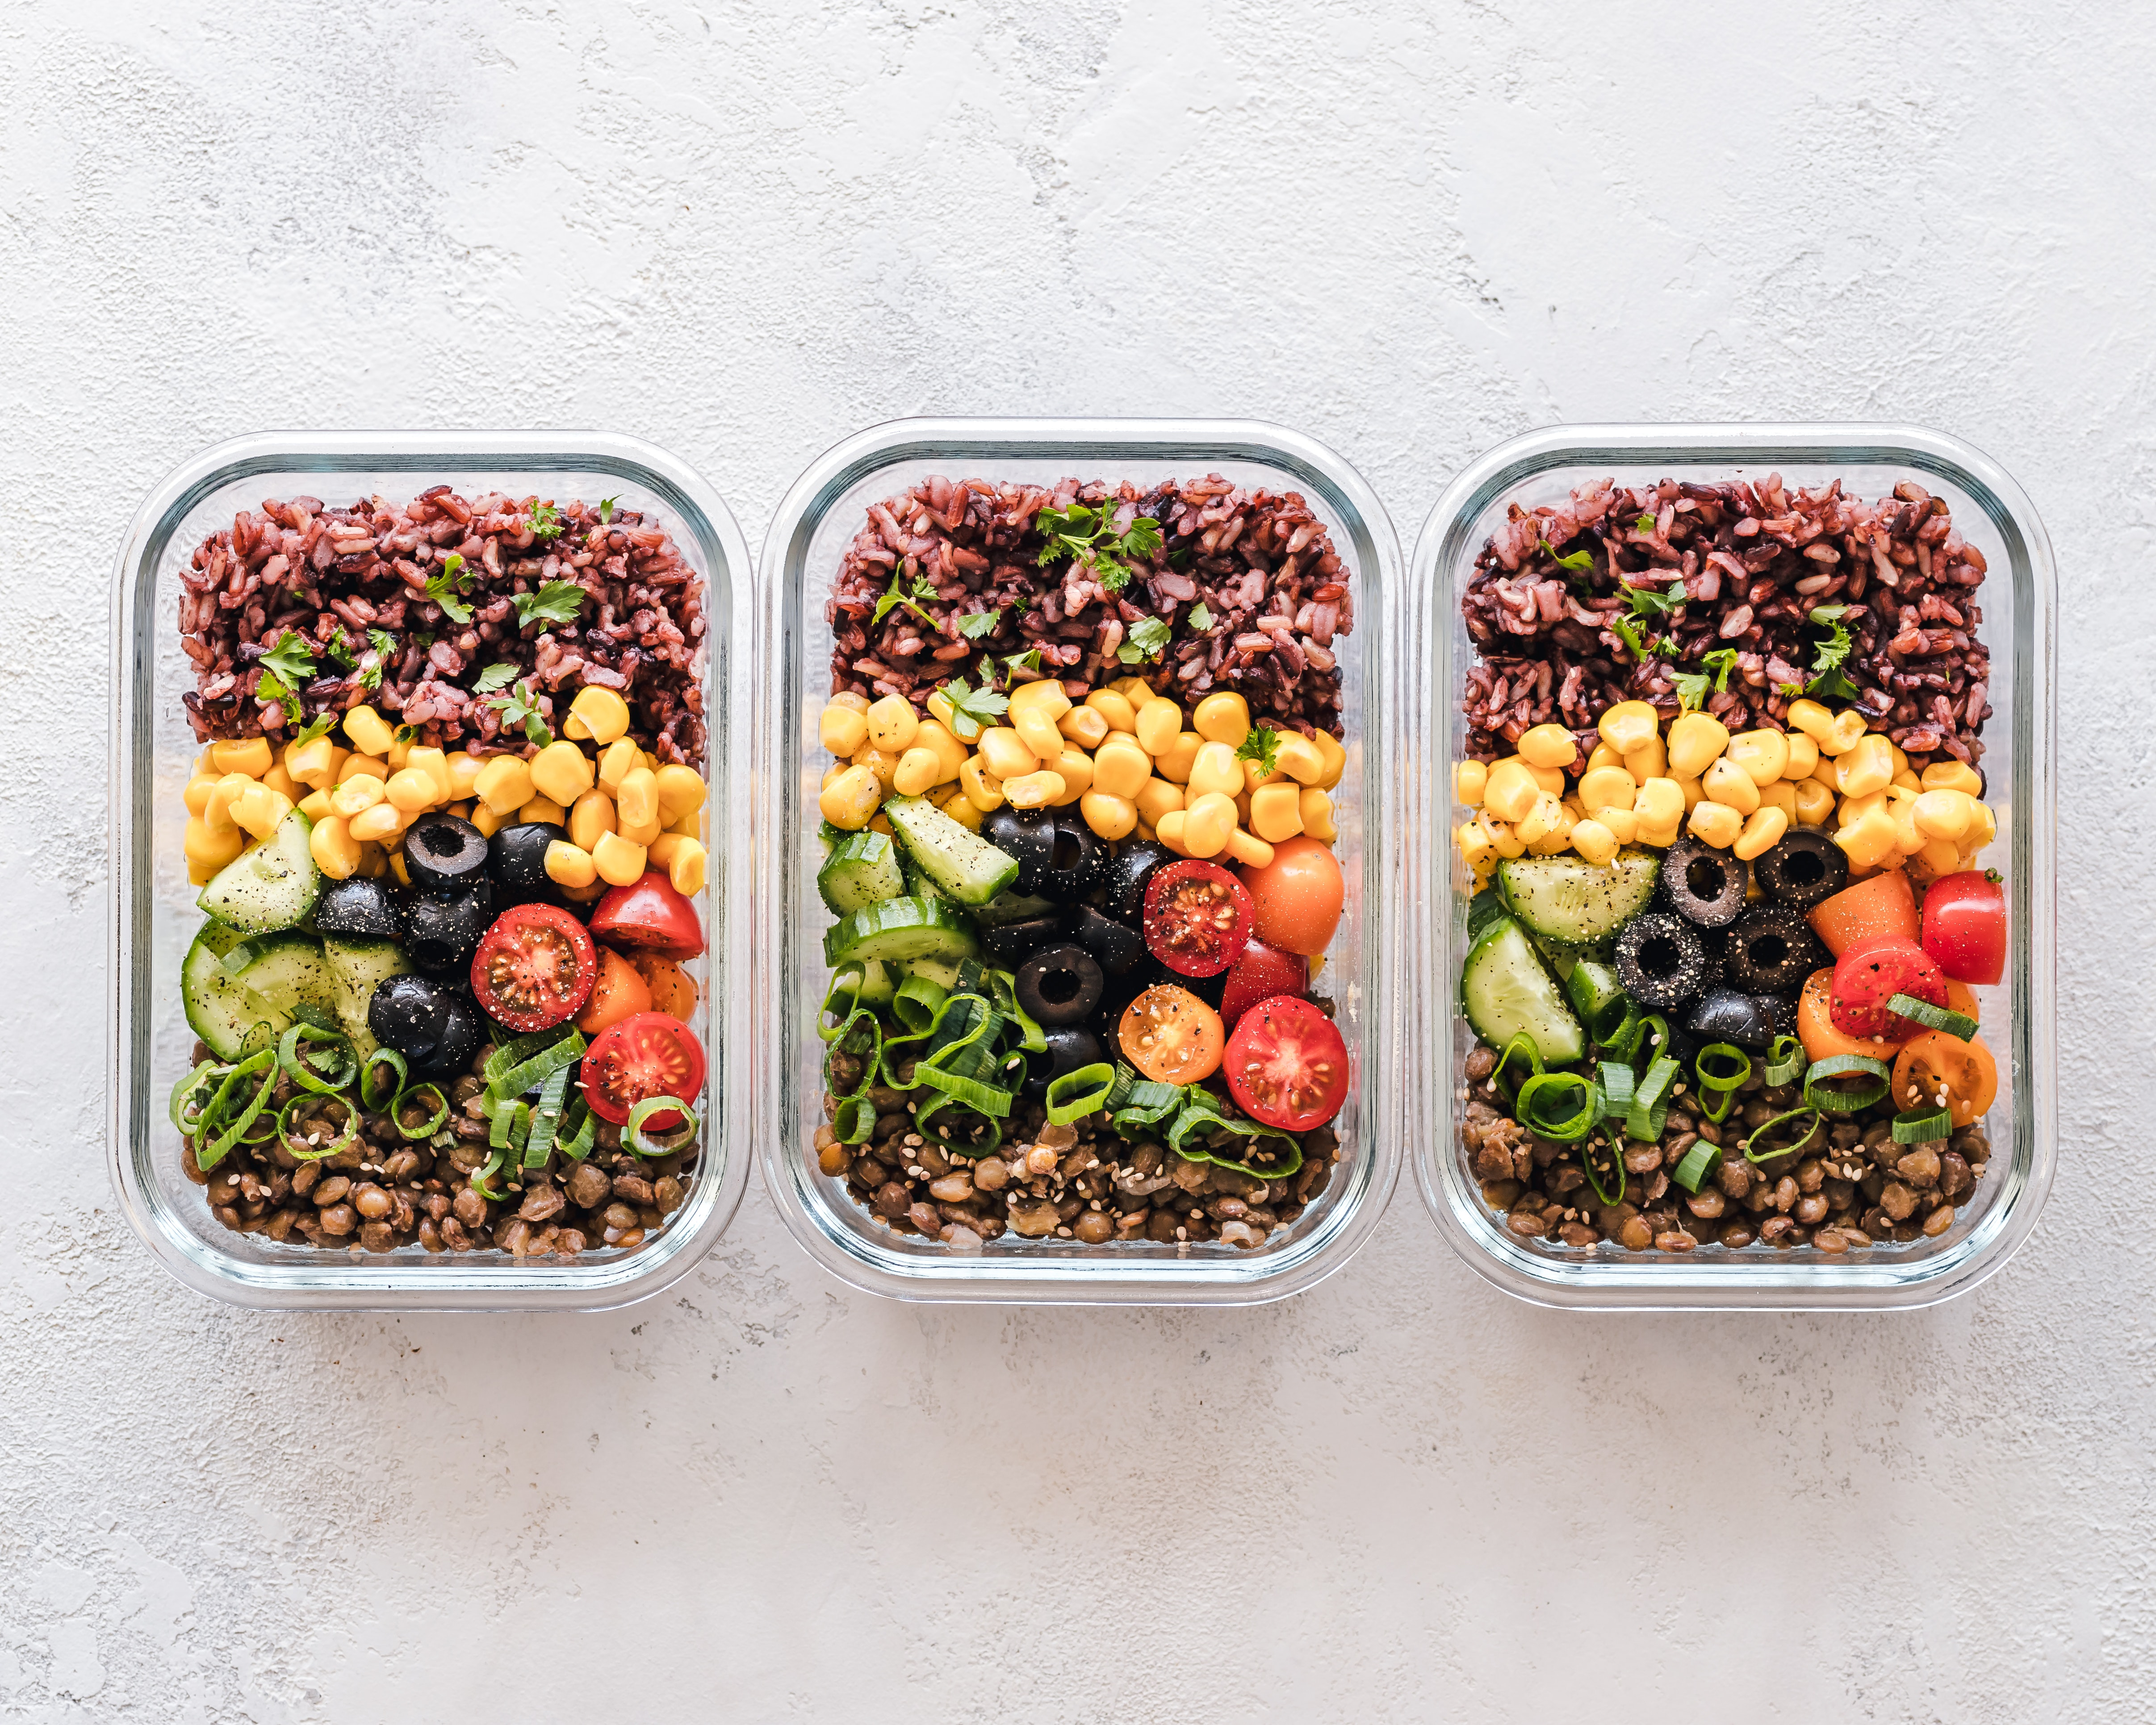 Cut waste at home: Meal prep saves time and money